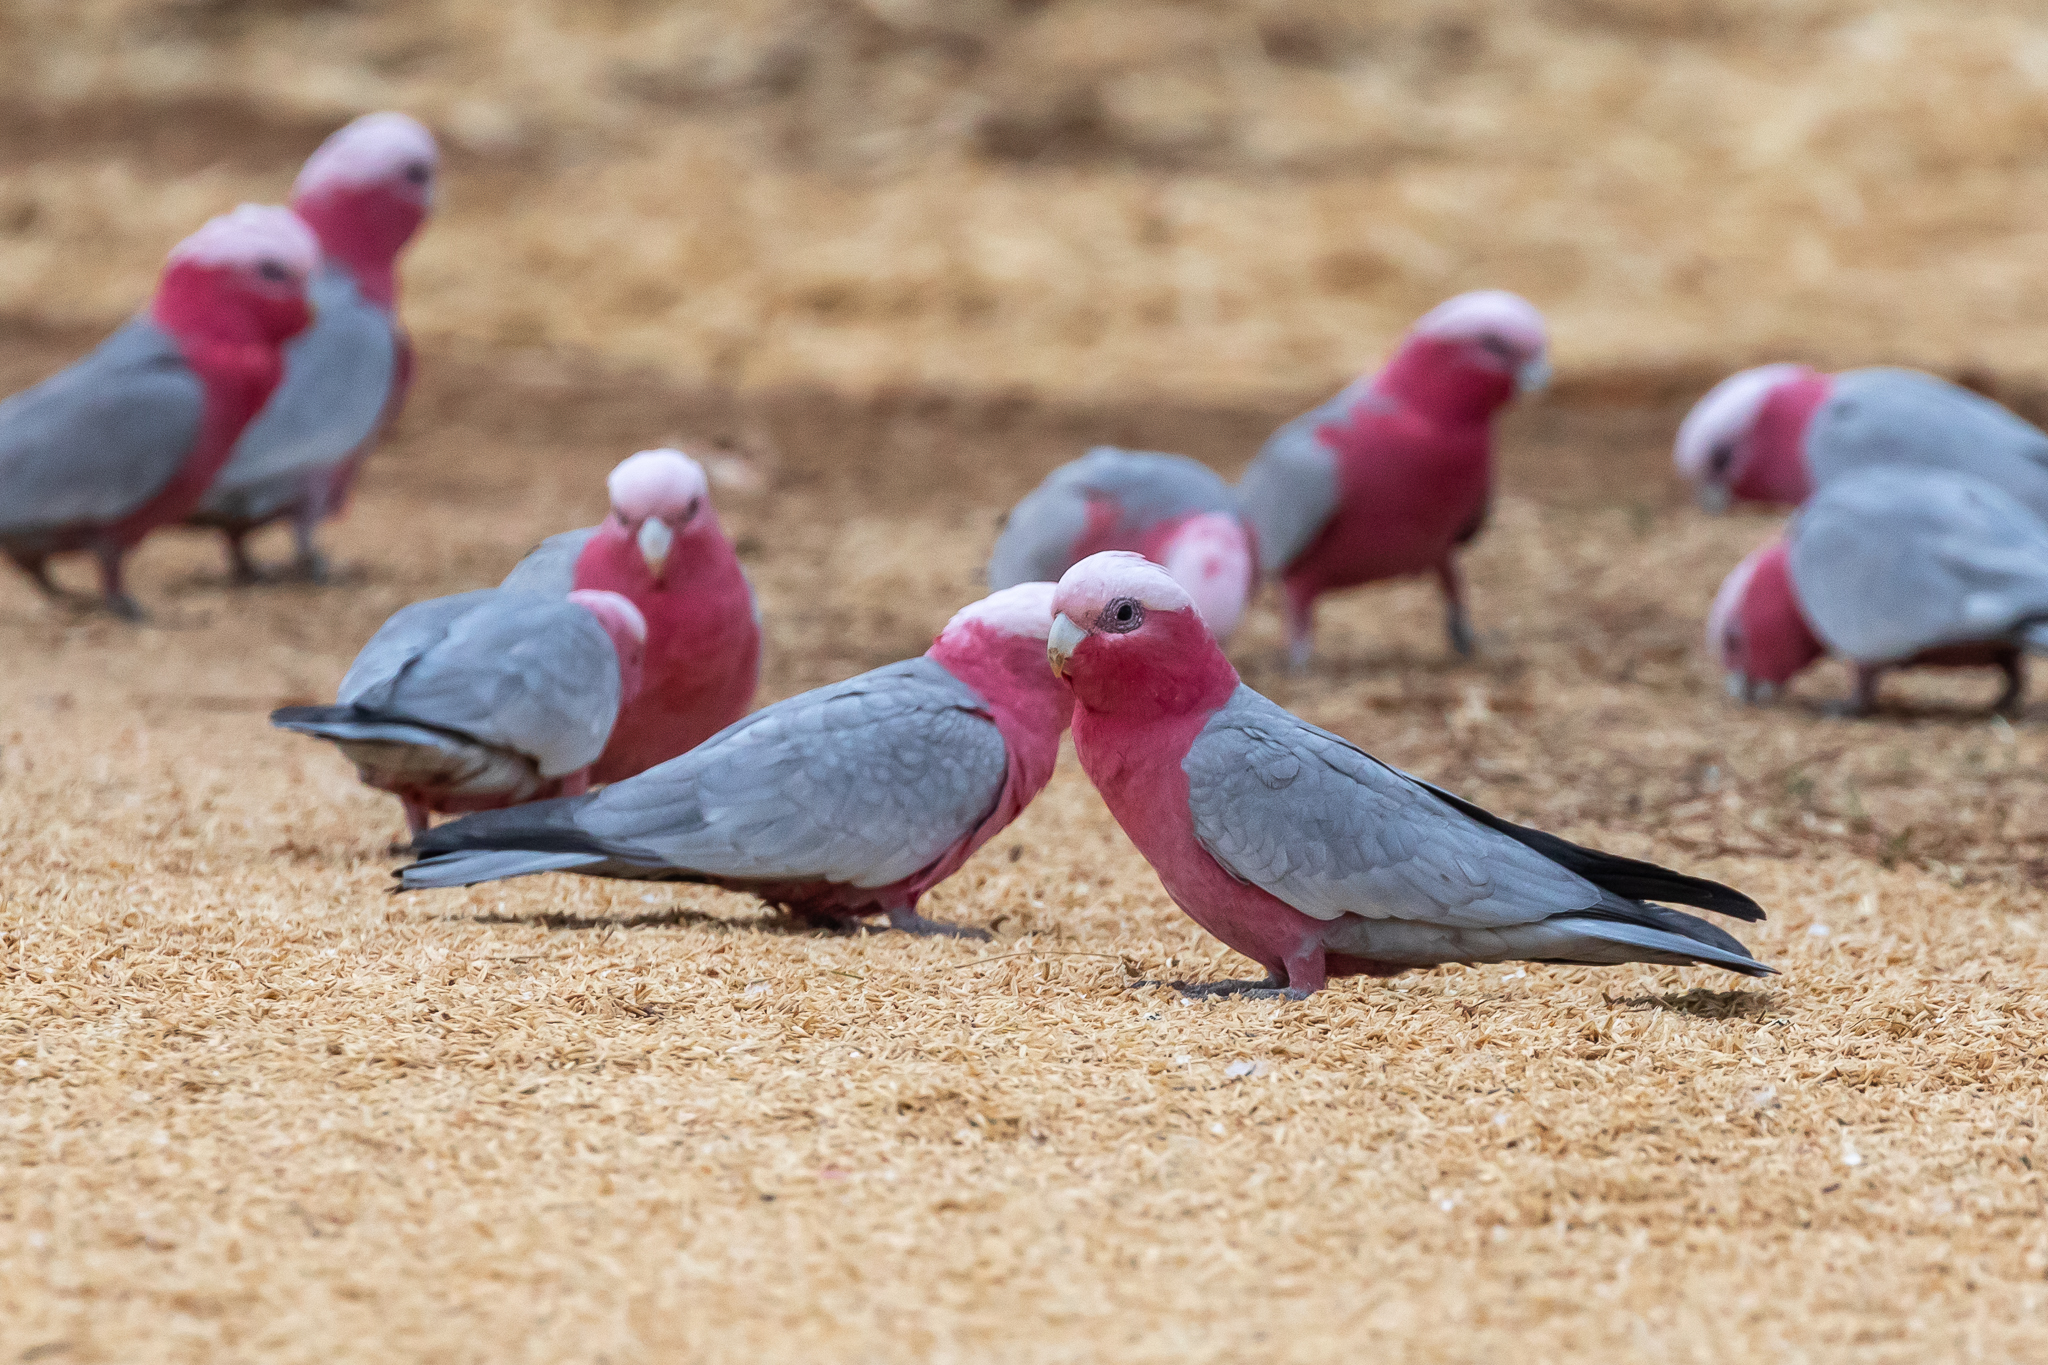 Galahs at a farm south of Cowra, feeding on seeds from the ground. Galahs are found across most of Australia. They have benefited from land clearing and have exploited the new food sources as grain crops expand across the Woodland areas.